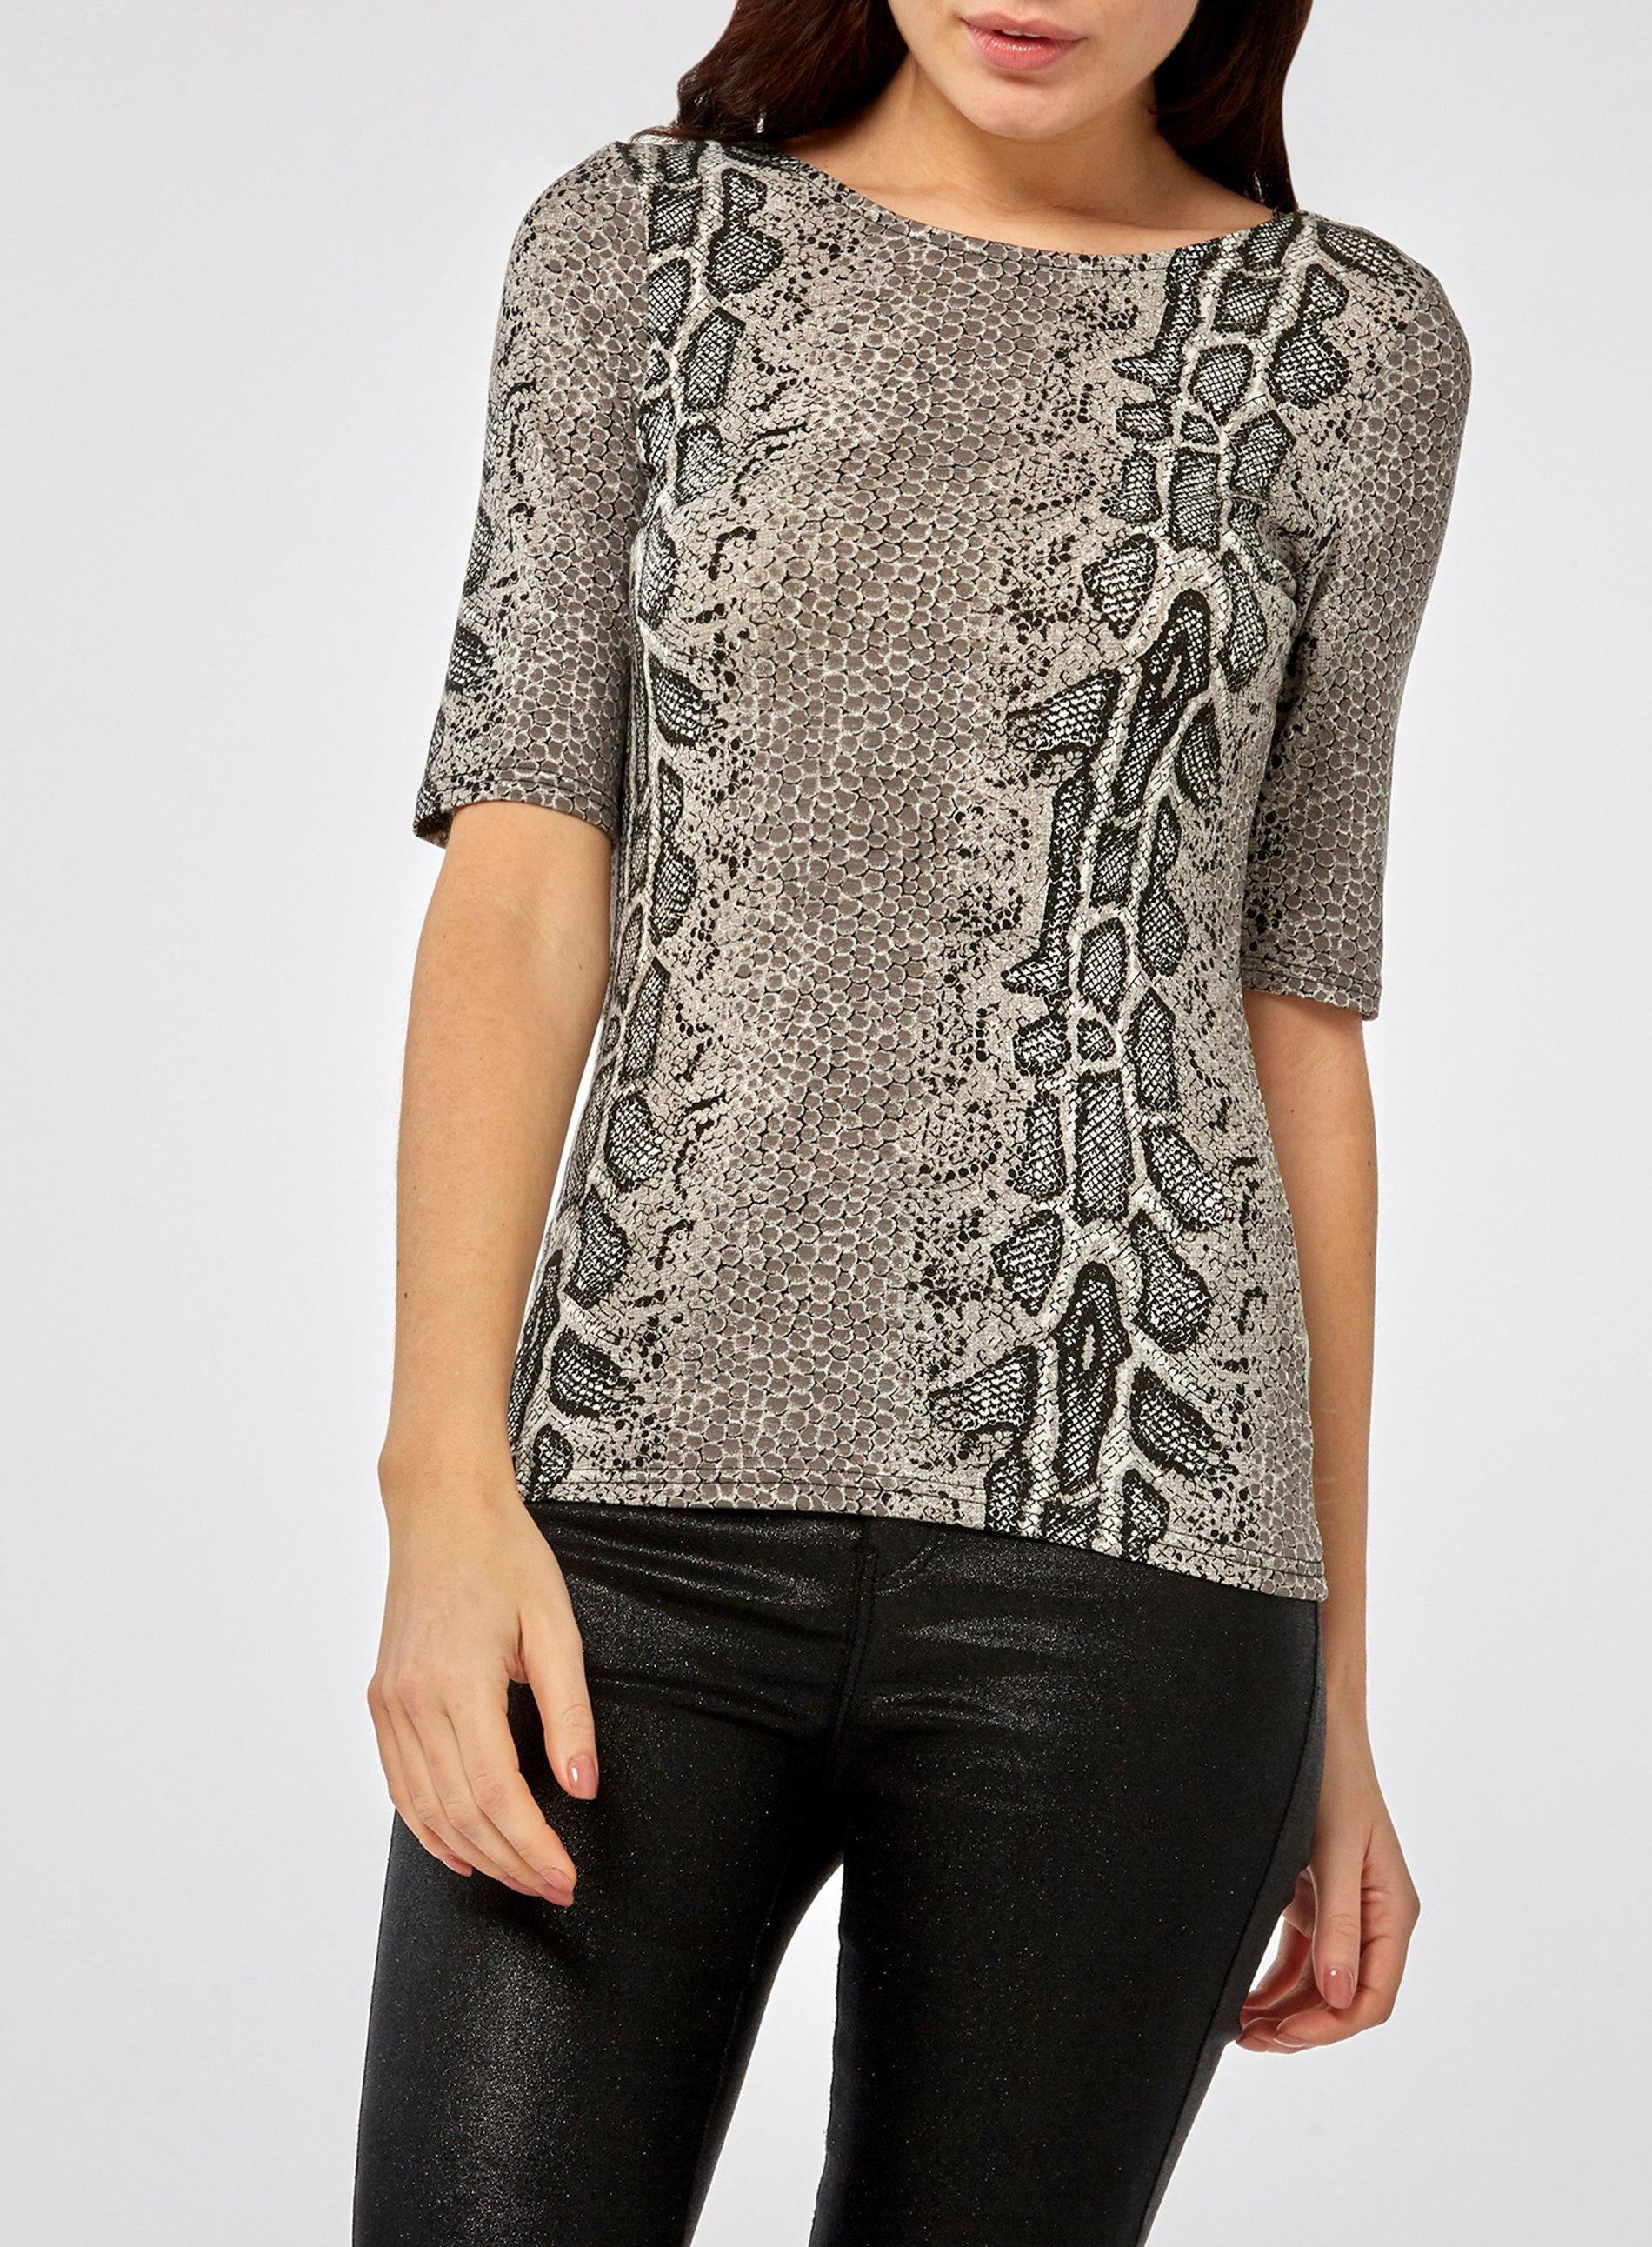 da57822433620 Dorothy Perkins - Black Multi Colour Snake Print Scoop Back Top - Lyst.  View fullscreen